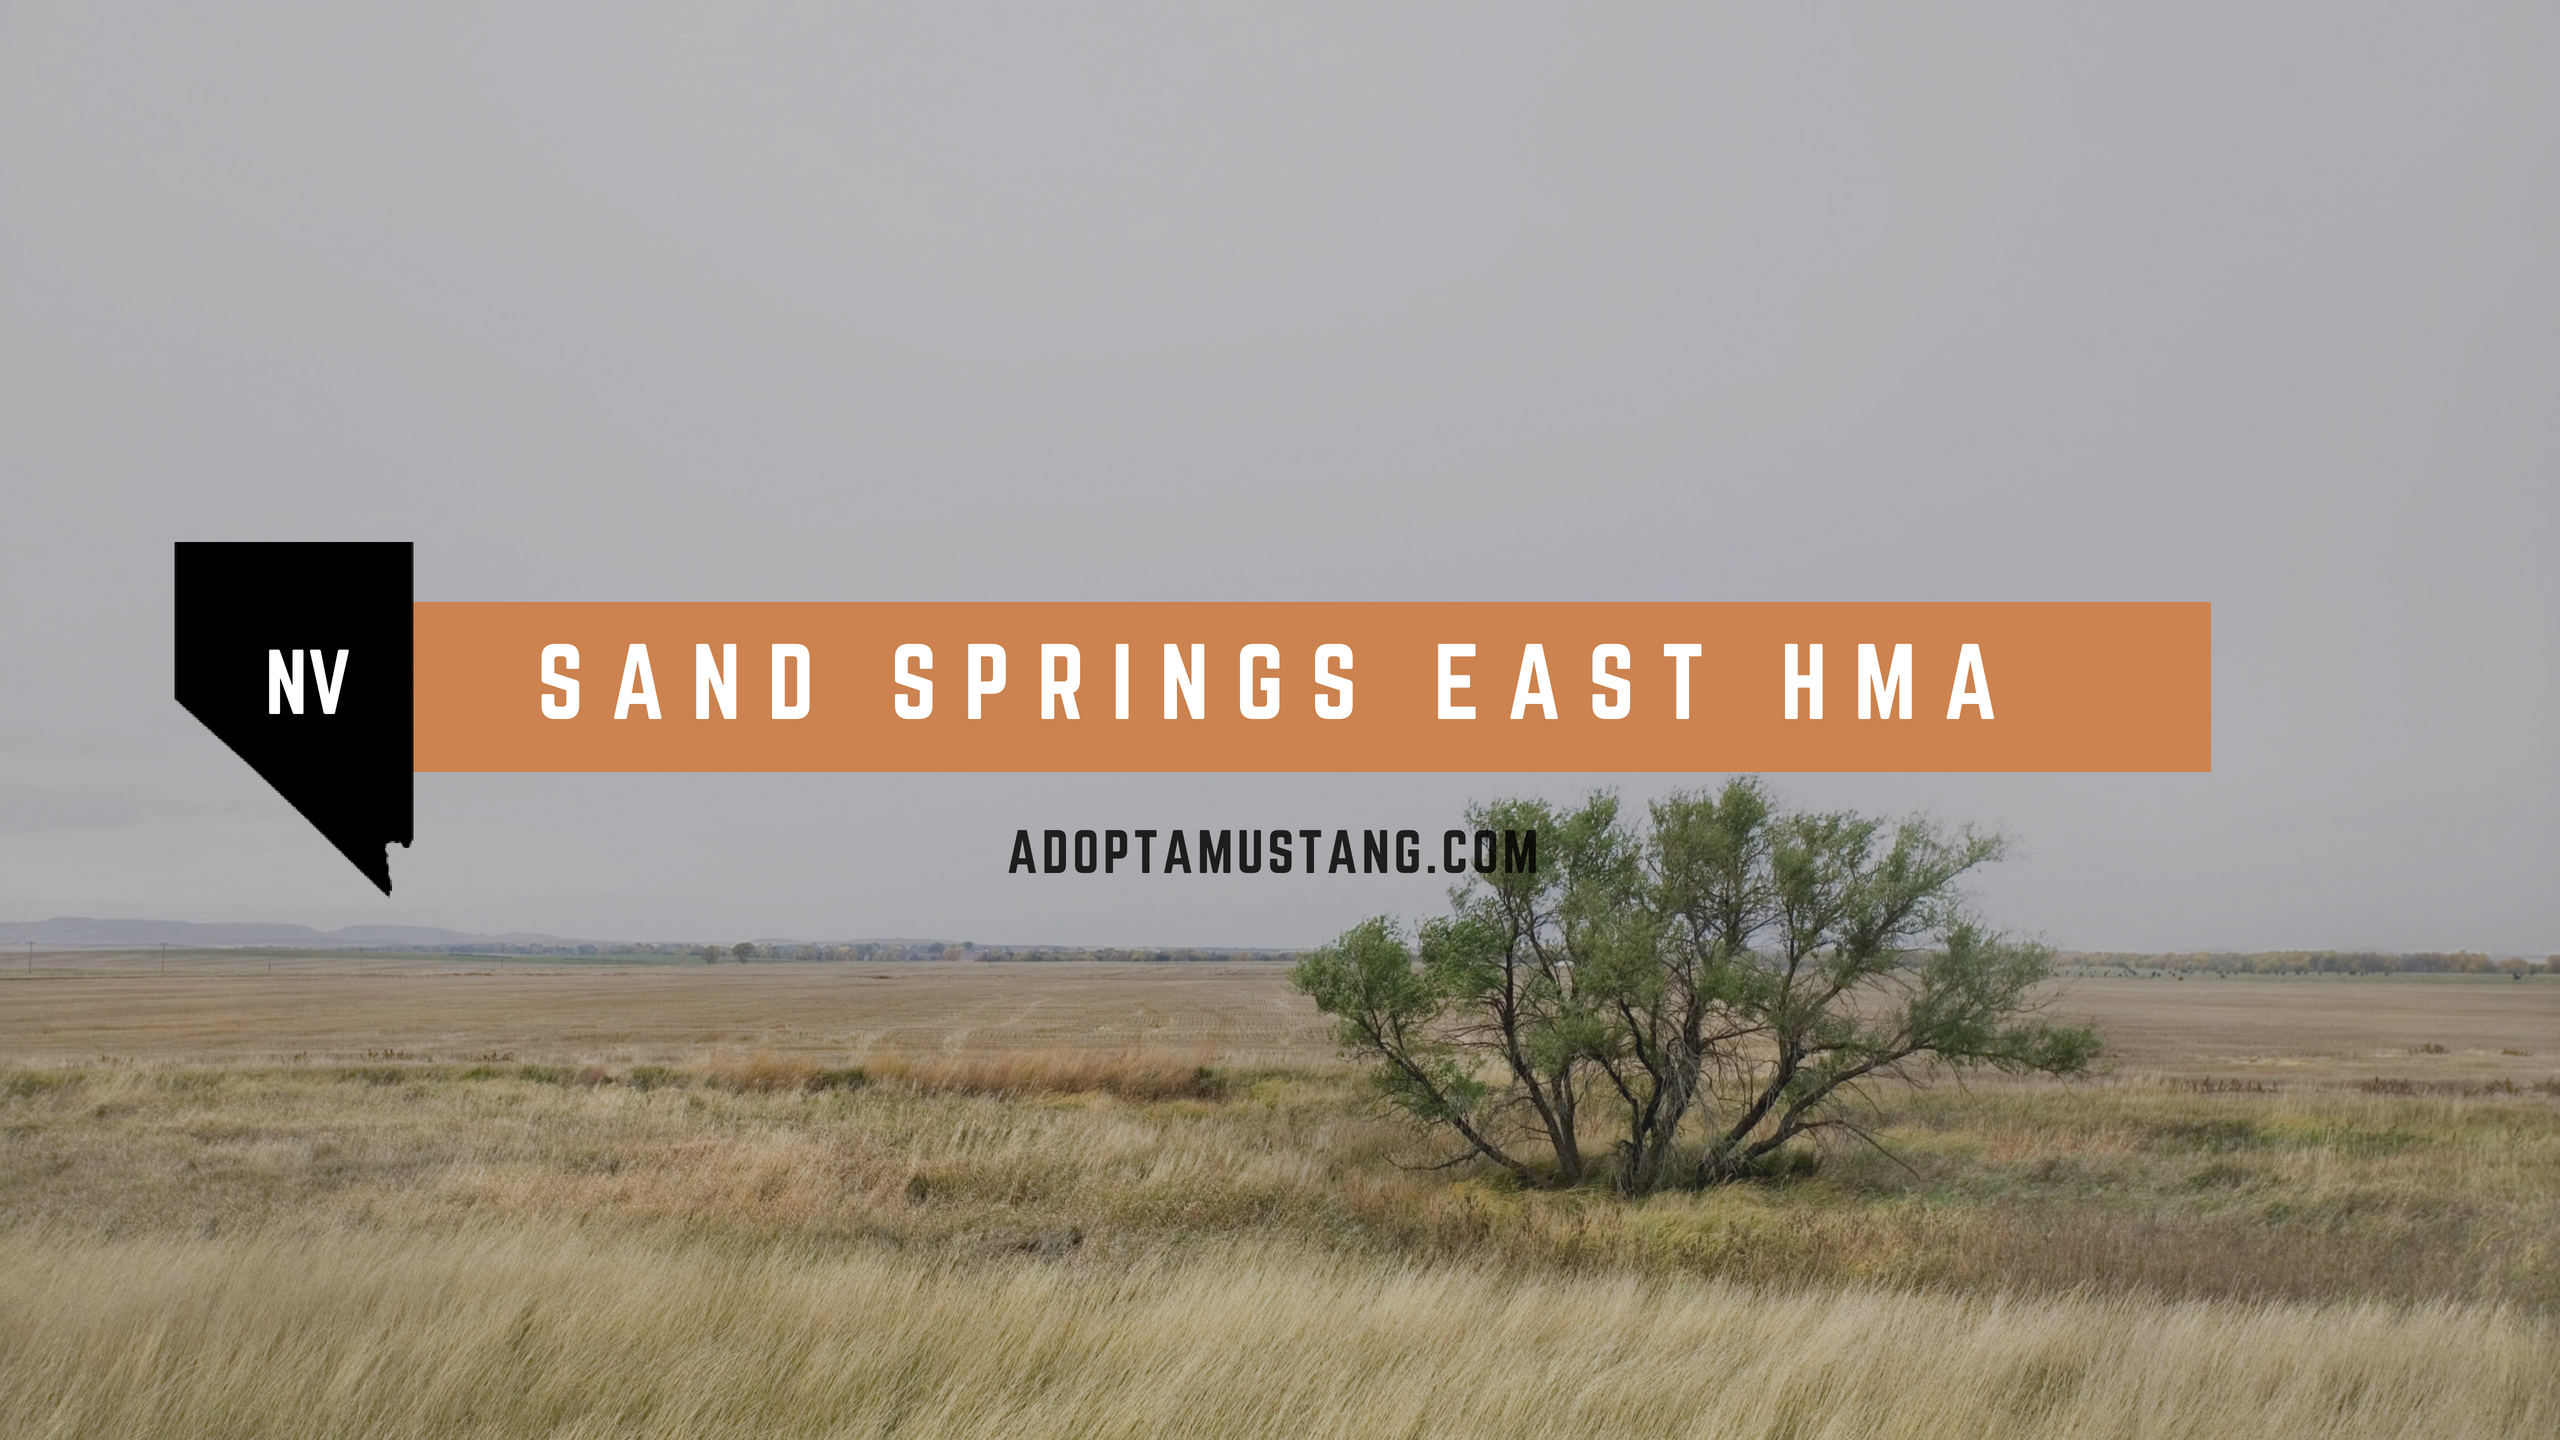 Sand Springs East NV HMA